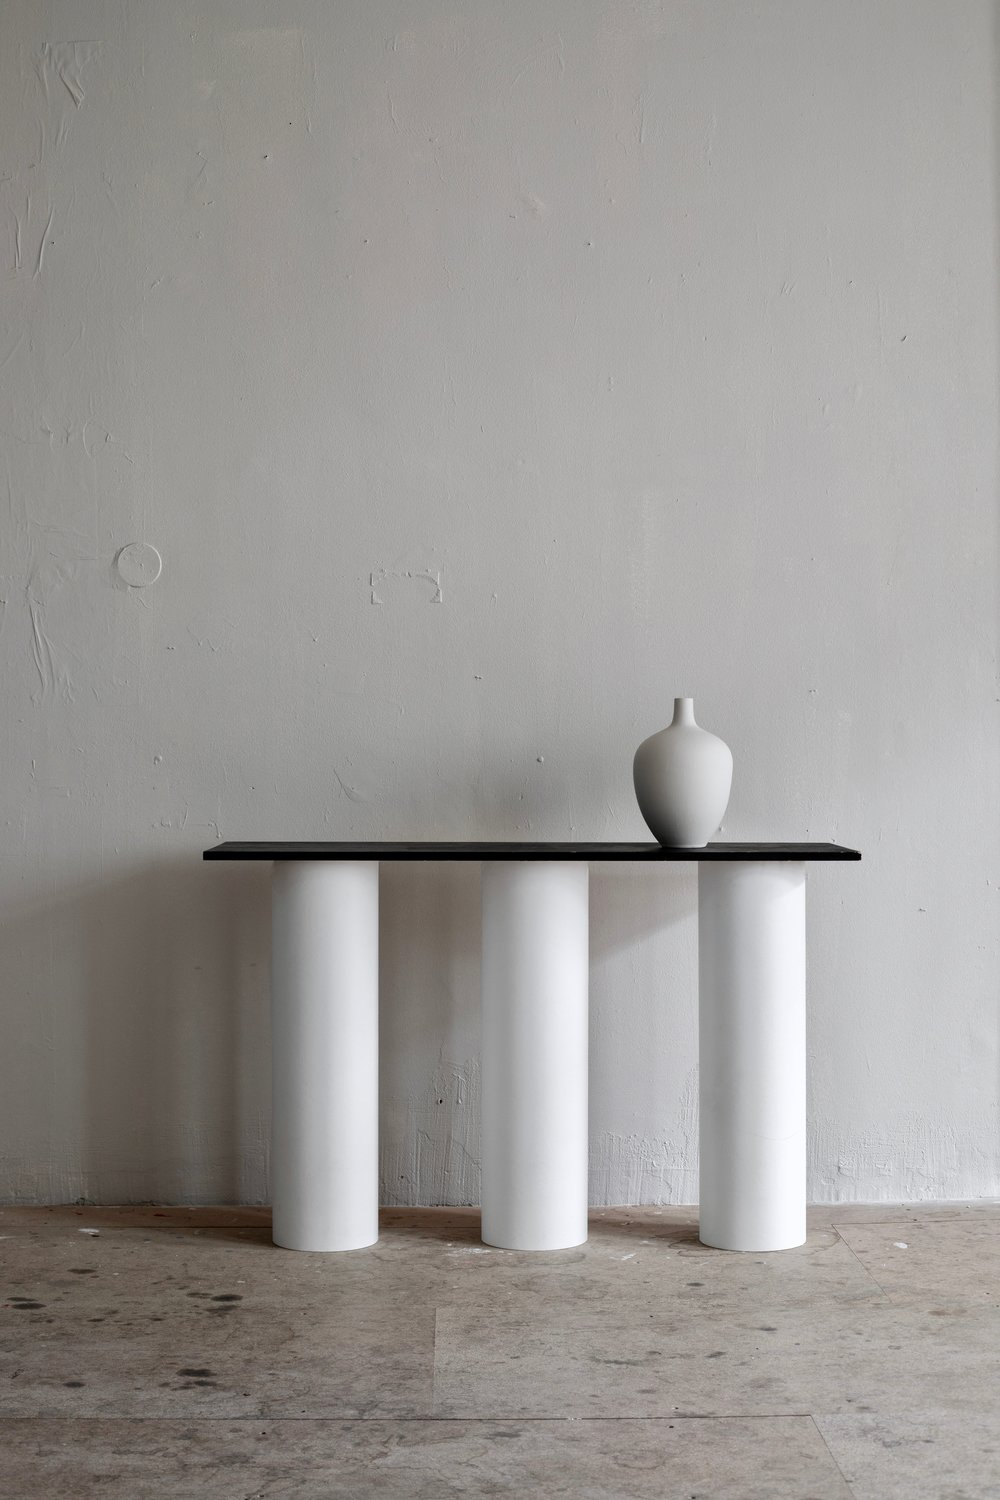 Pictured above is the Veritical Table Legs, with an oval table top that measures 200 x 100 cm.